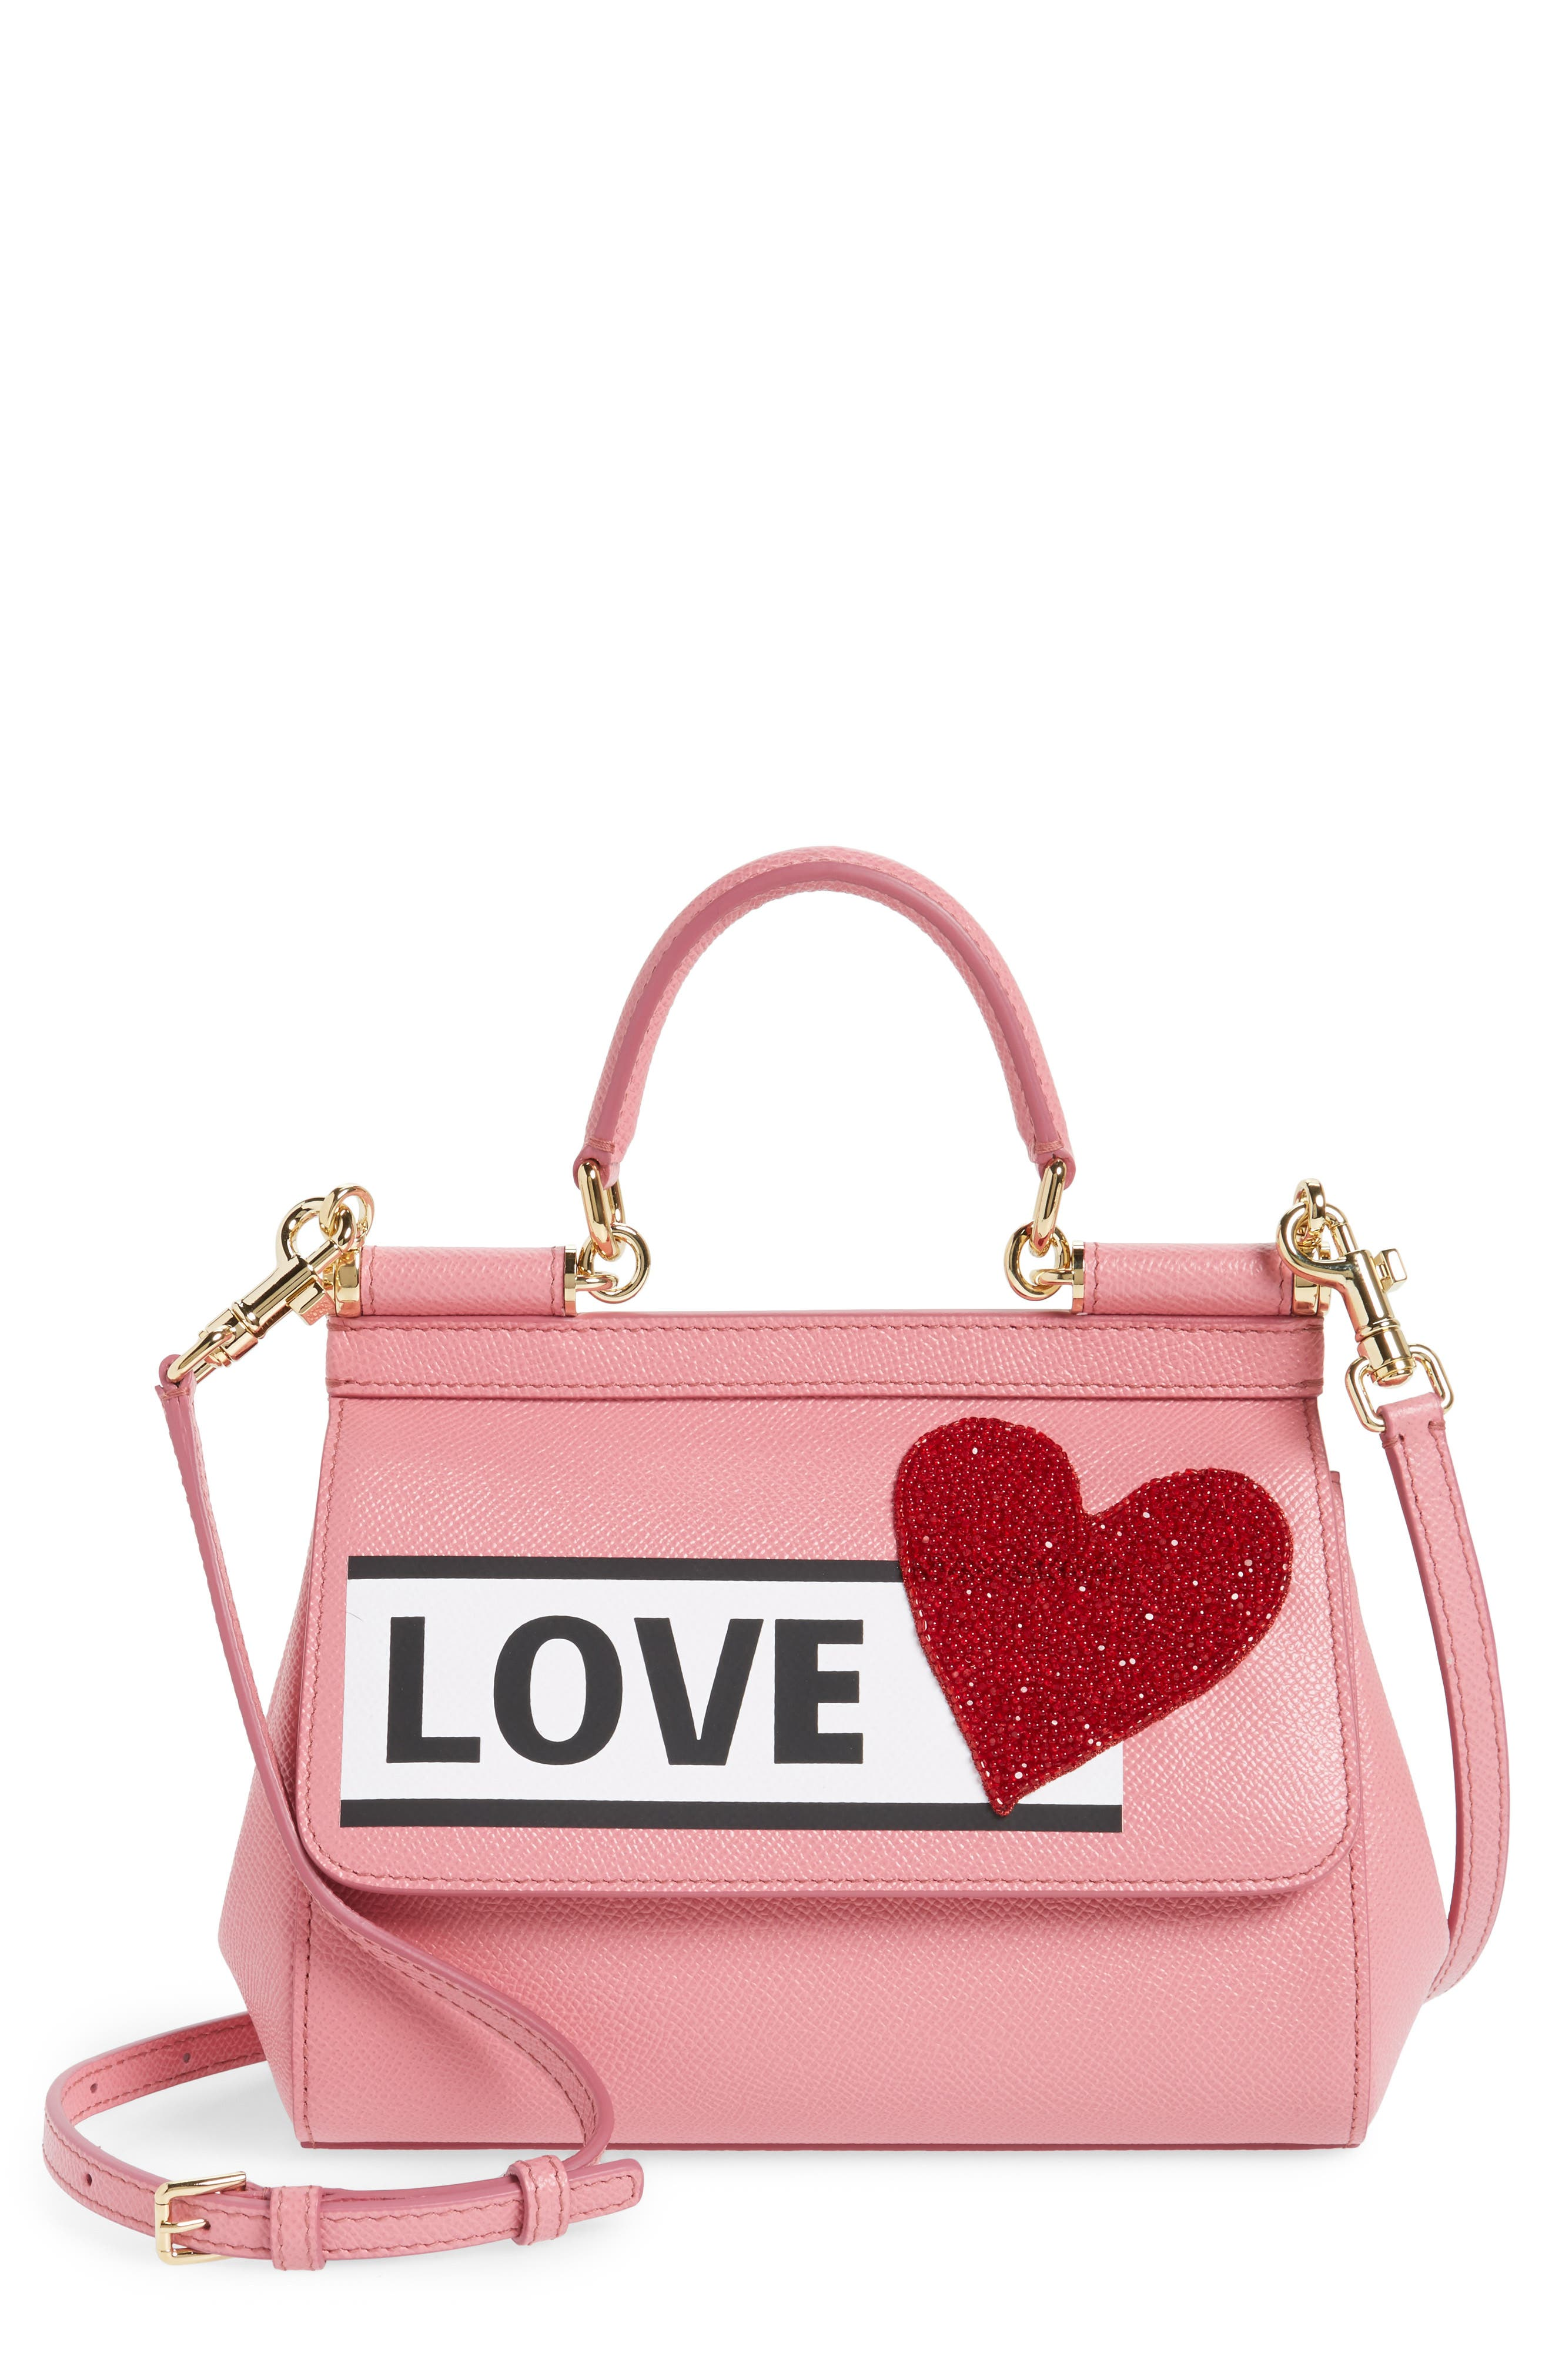 Small Miss Sicily - Love Leather Satchel,                             Main thumbnail 1, color,                             670